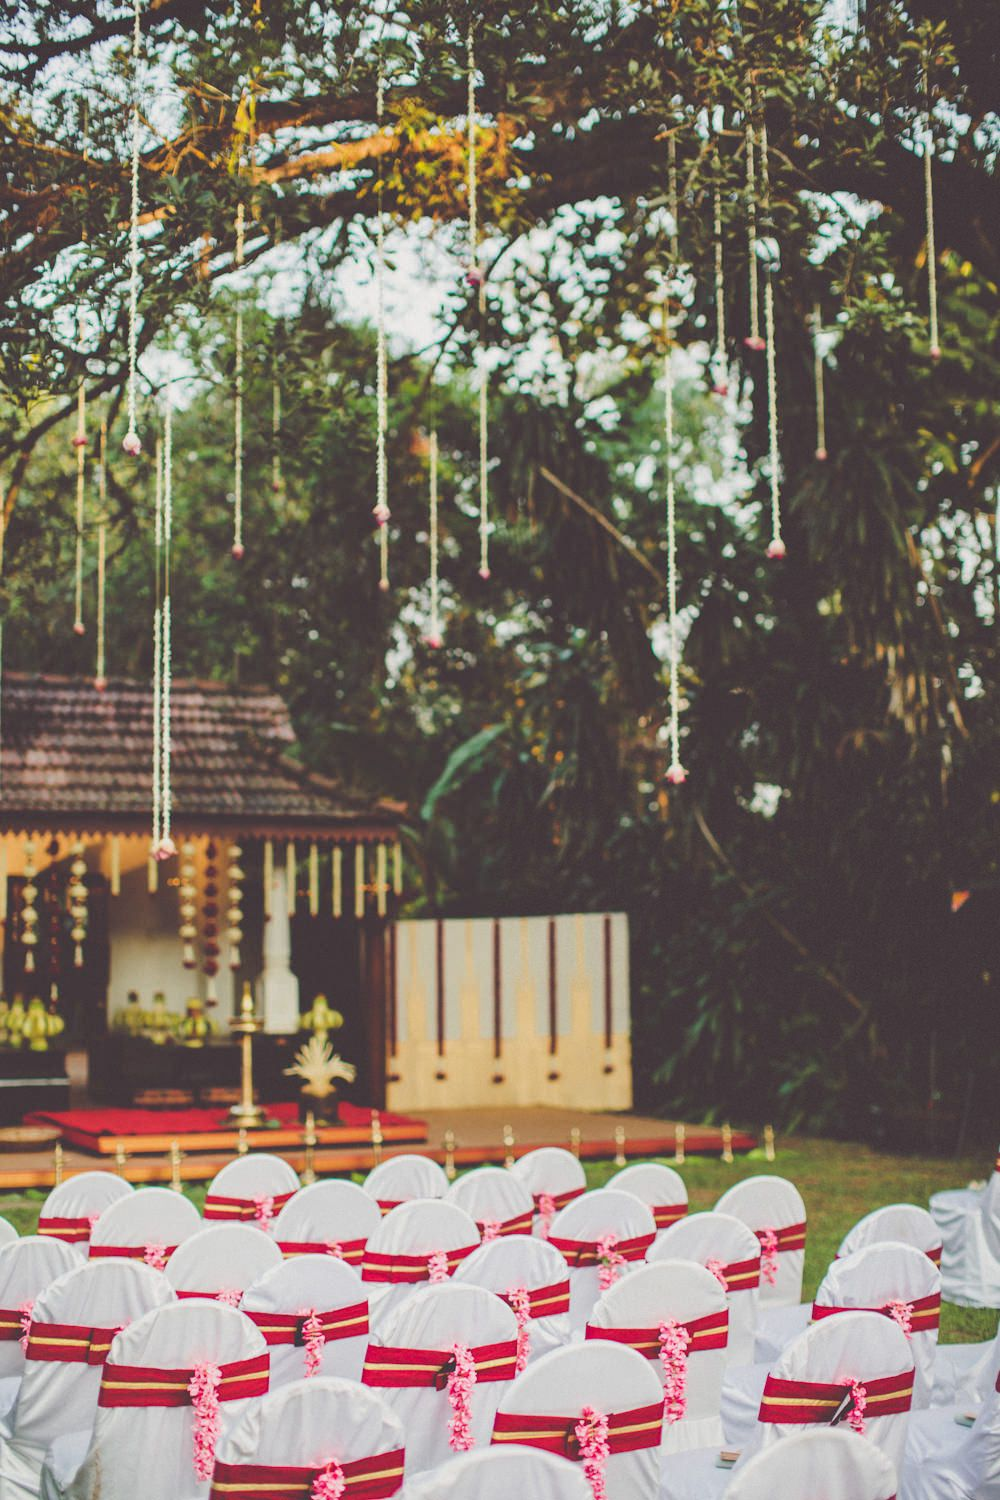 Wedding decoration ideas in kerala  A Kerala wedding in India with an ivory and gold bridal sari and